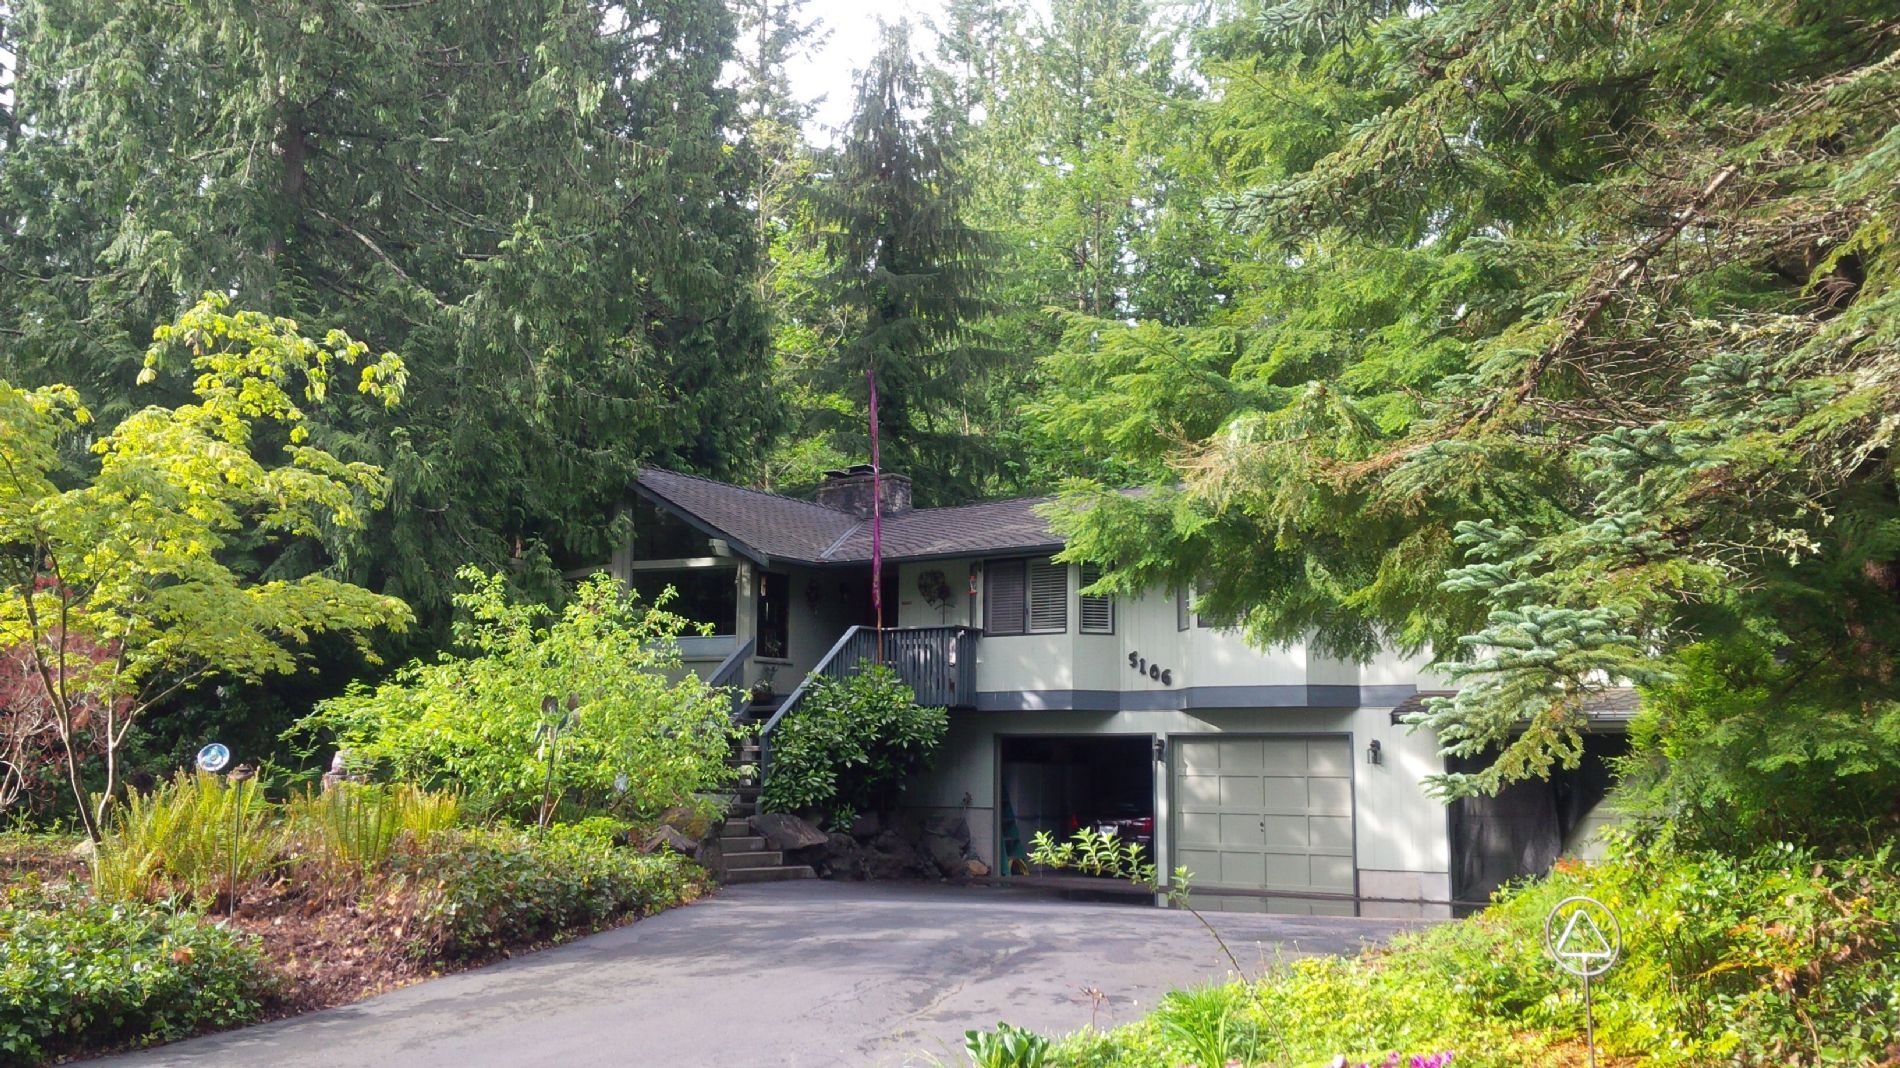 Modernized Home With Lots Of Privacy Wooded Area Walking Trails